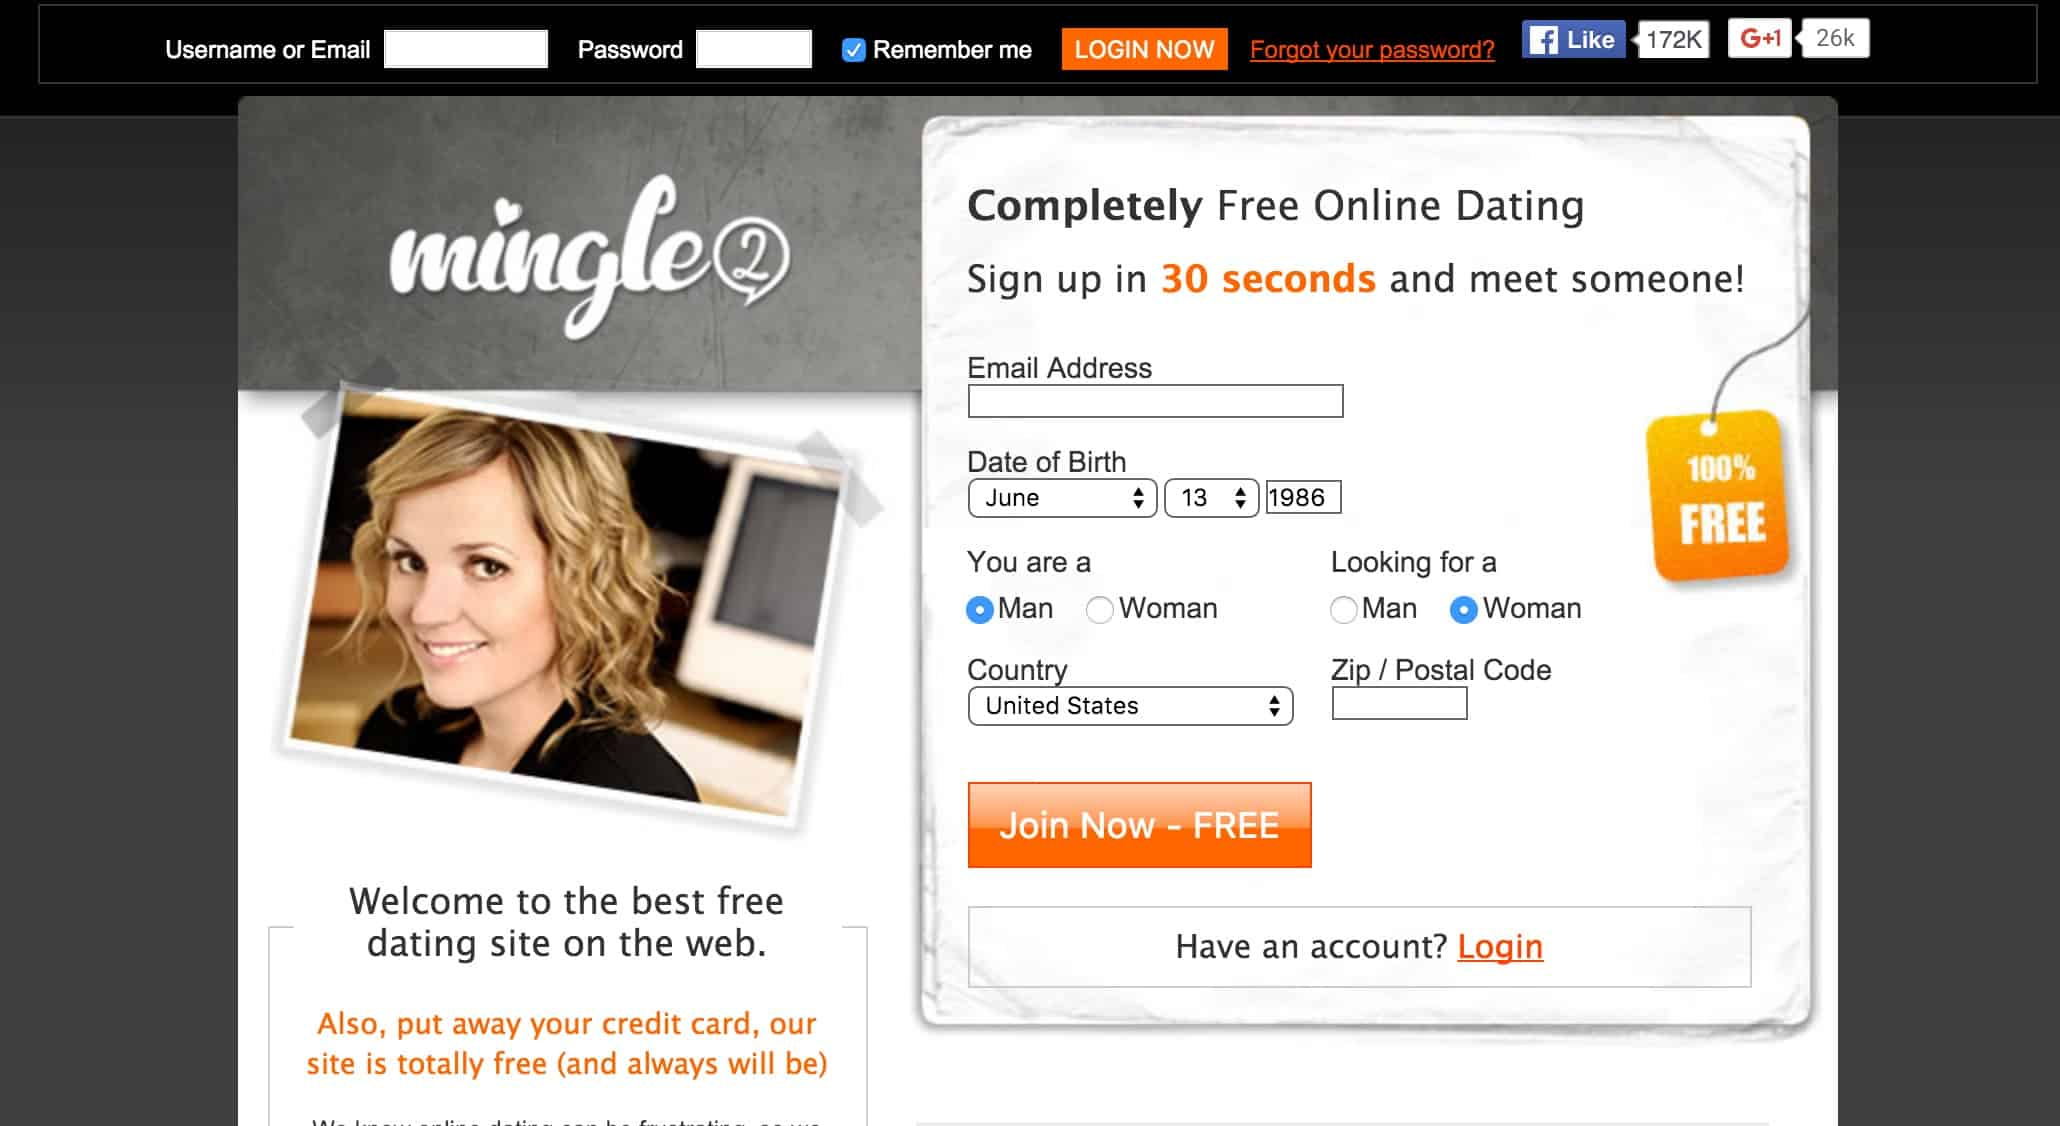 South african free dating sites - GoldSoftwareCom